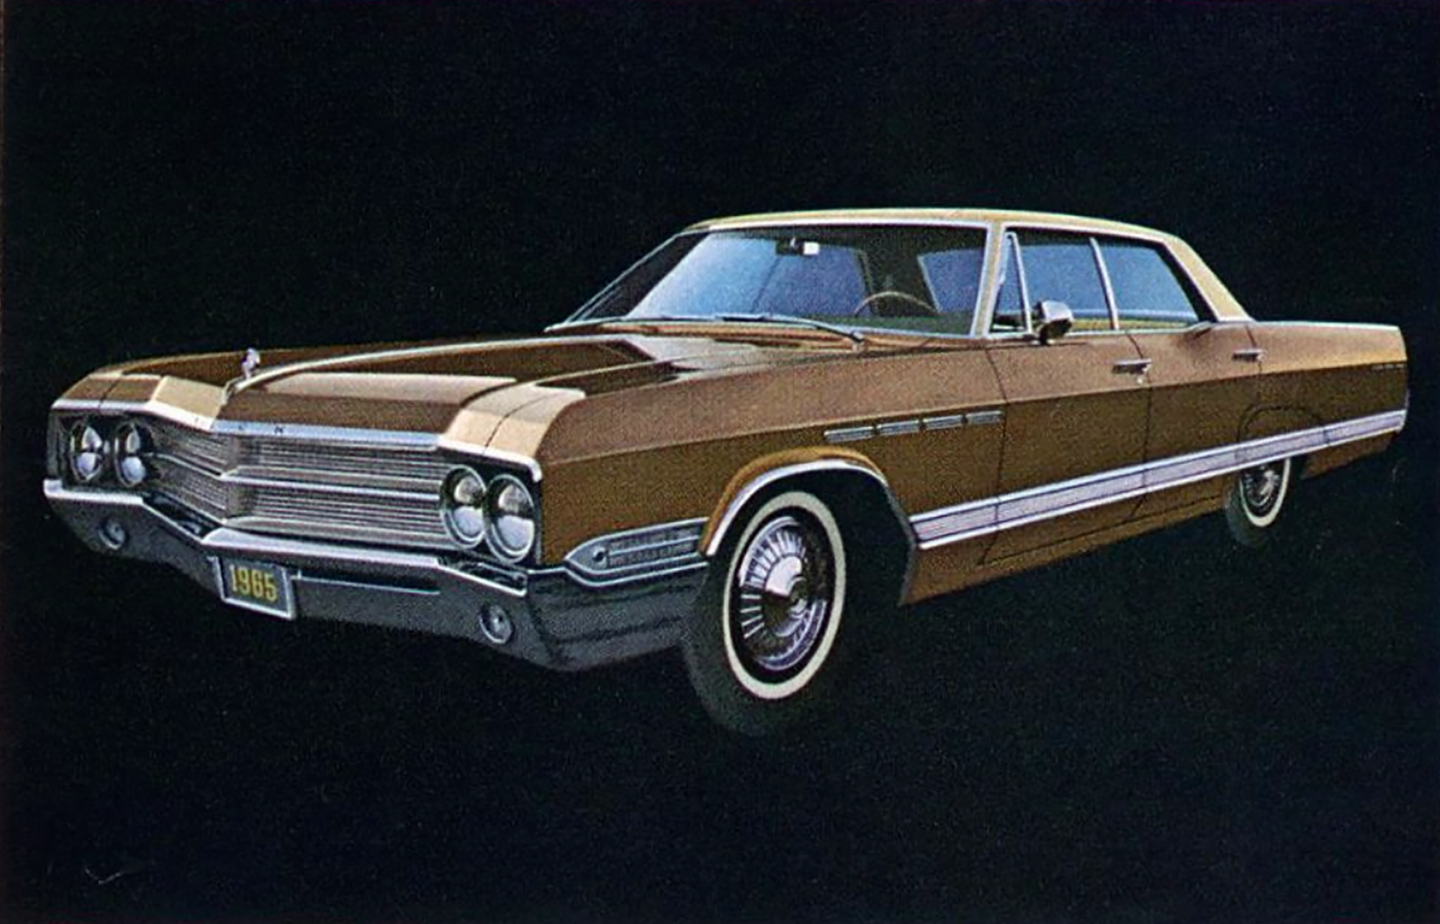 1965 Buick, Classic Buick Ads